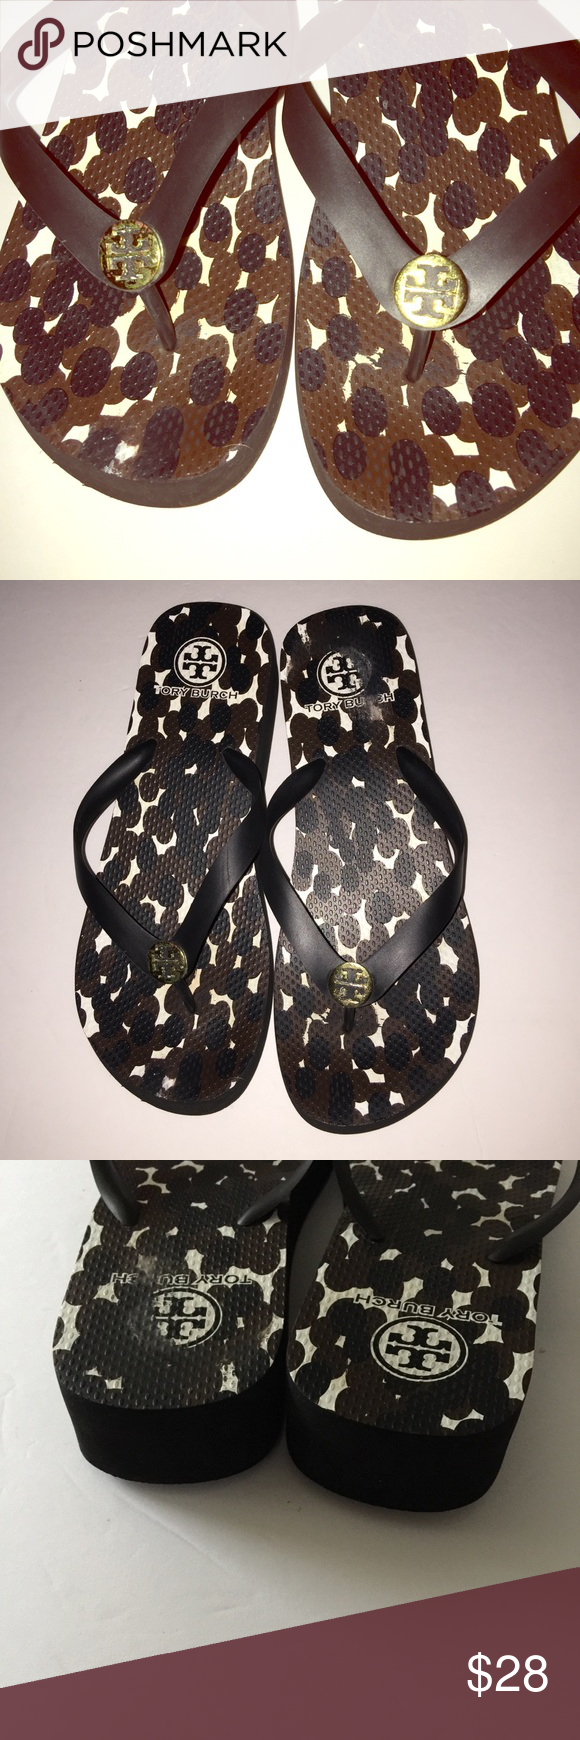 eb2a5ae7b941 Tory Burch Platform Flip Flops Authentic in Good Used Condition